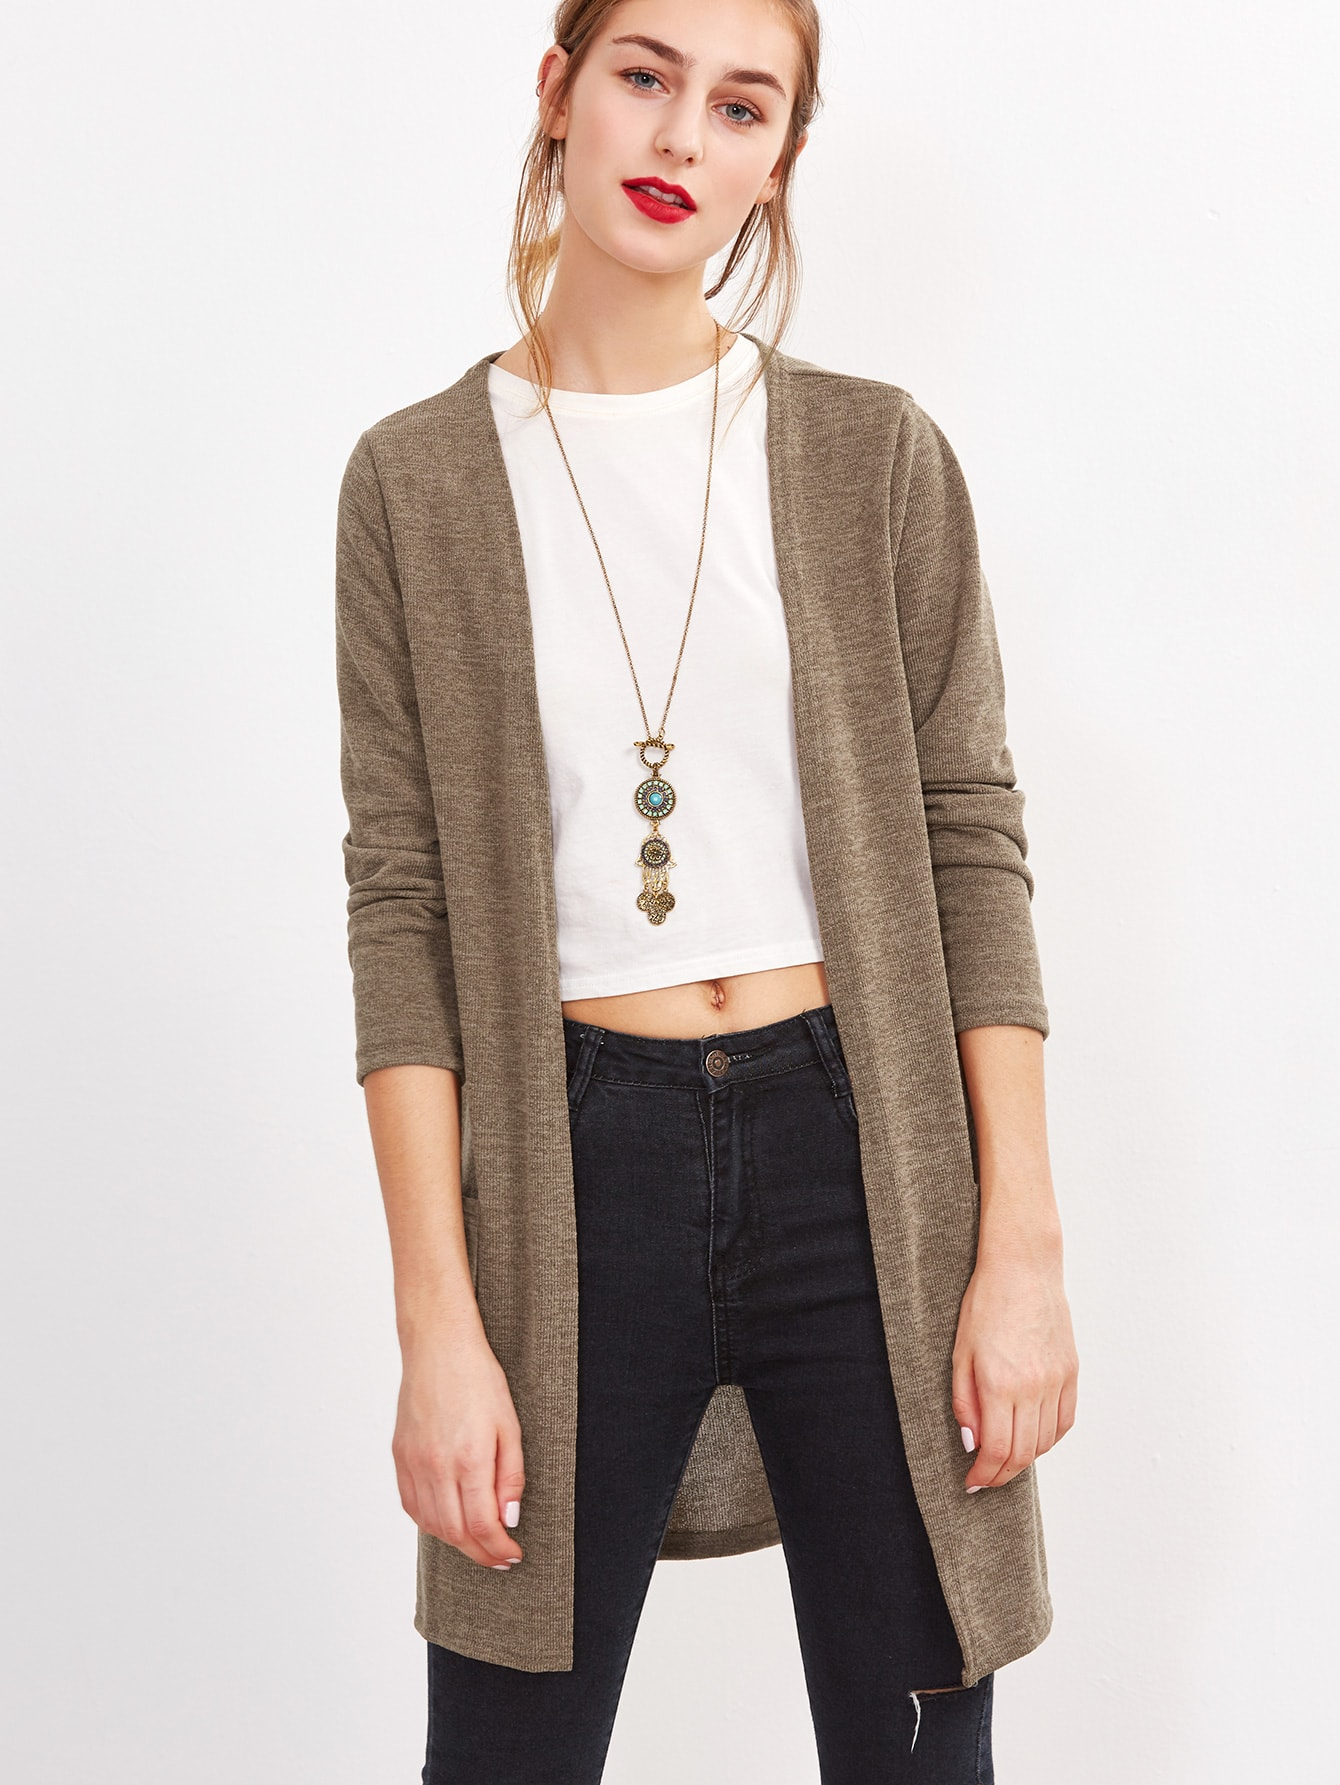 Khaki Long Sleeve Pockets Cardigan -SheIn(Sheinside)